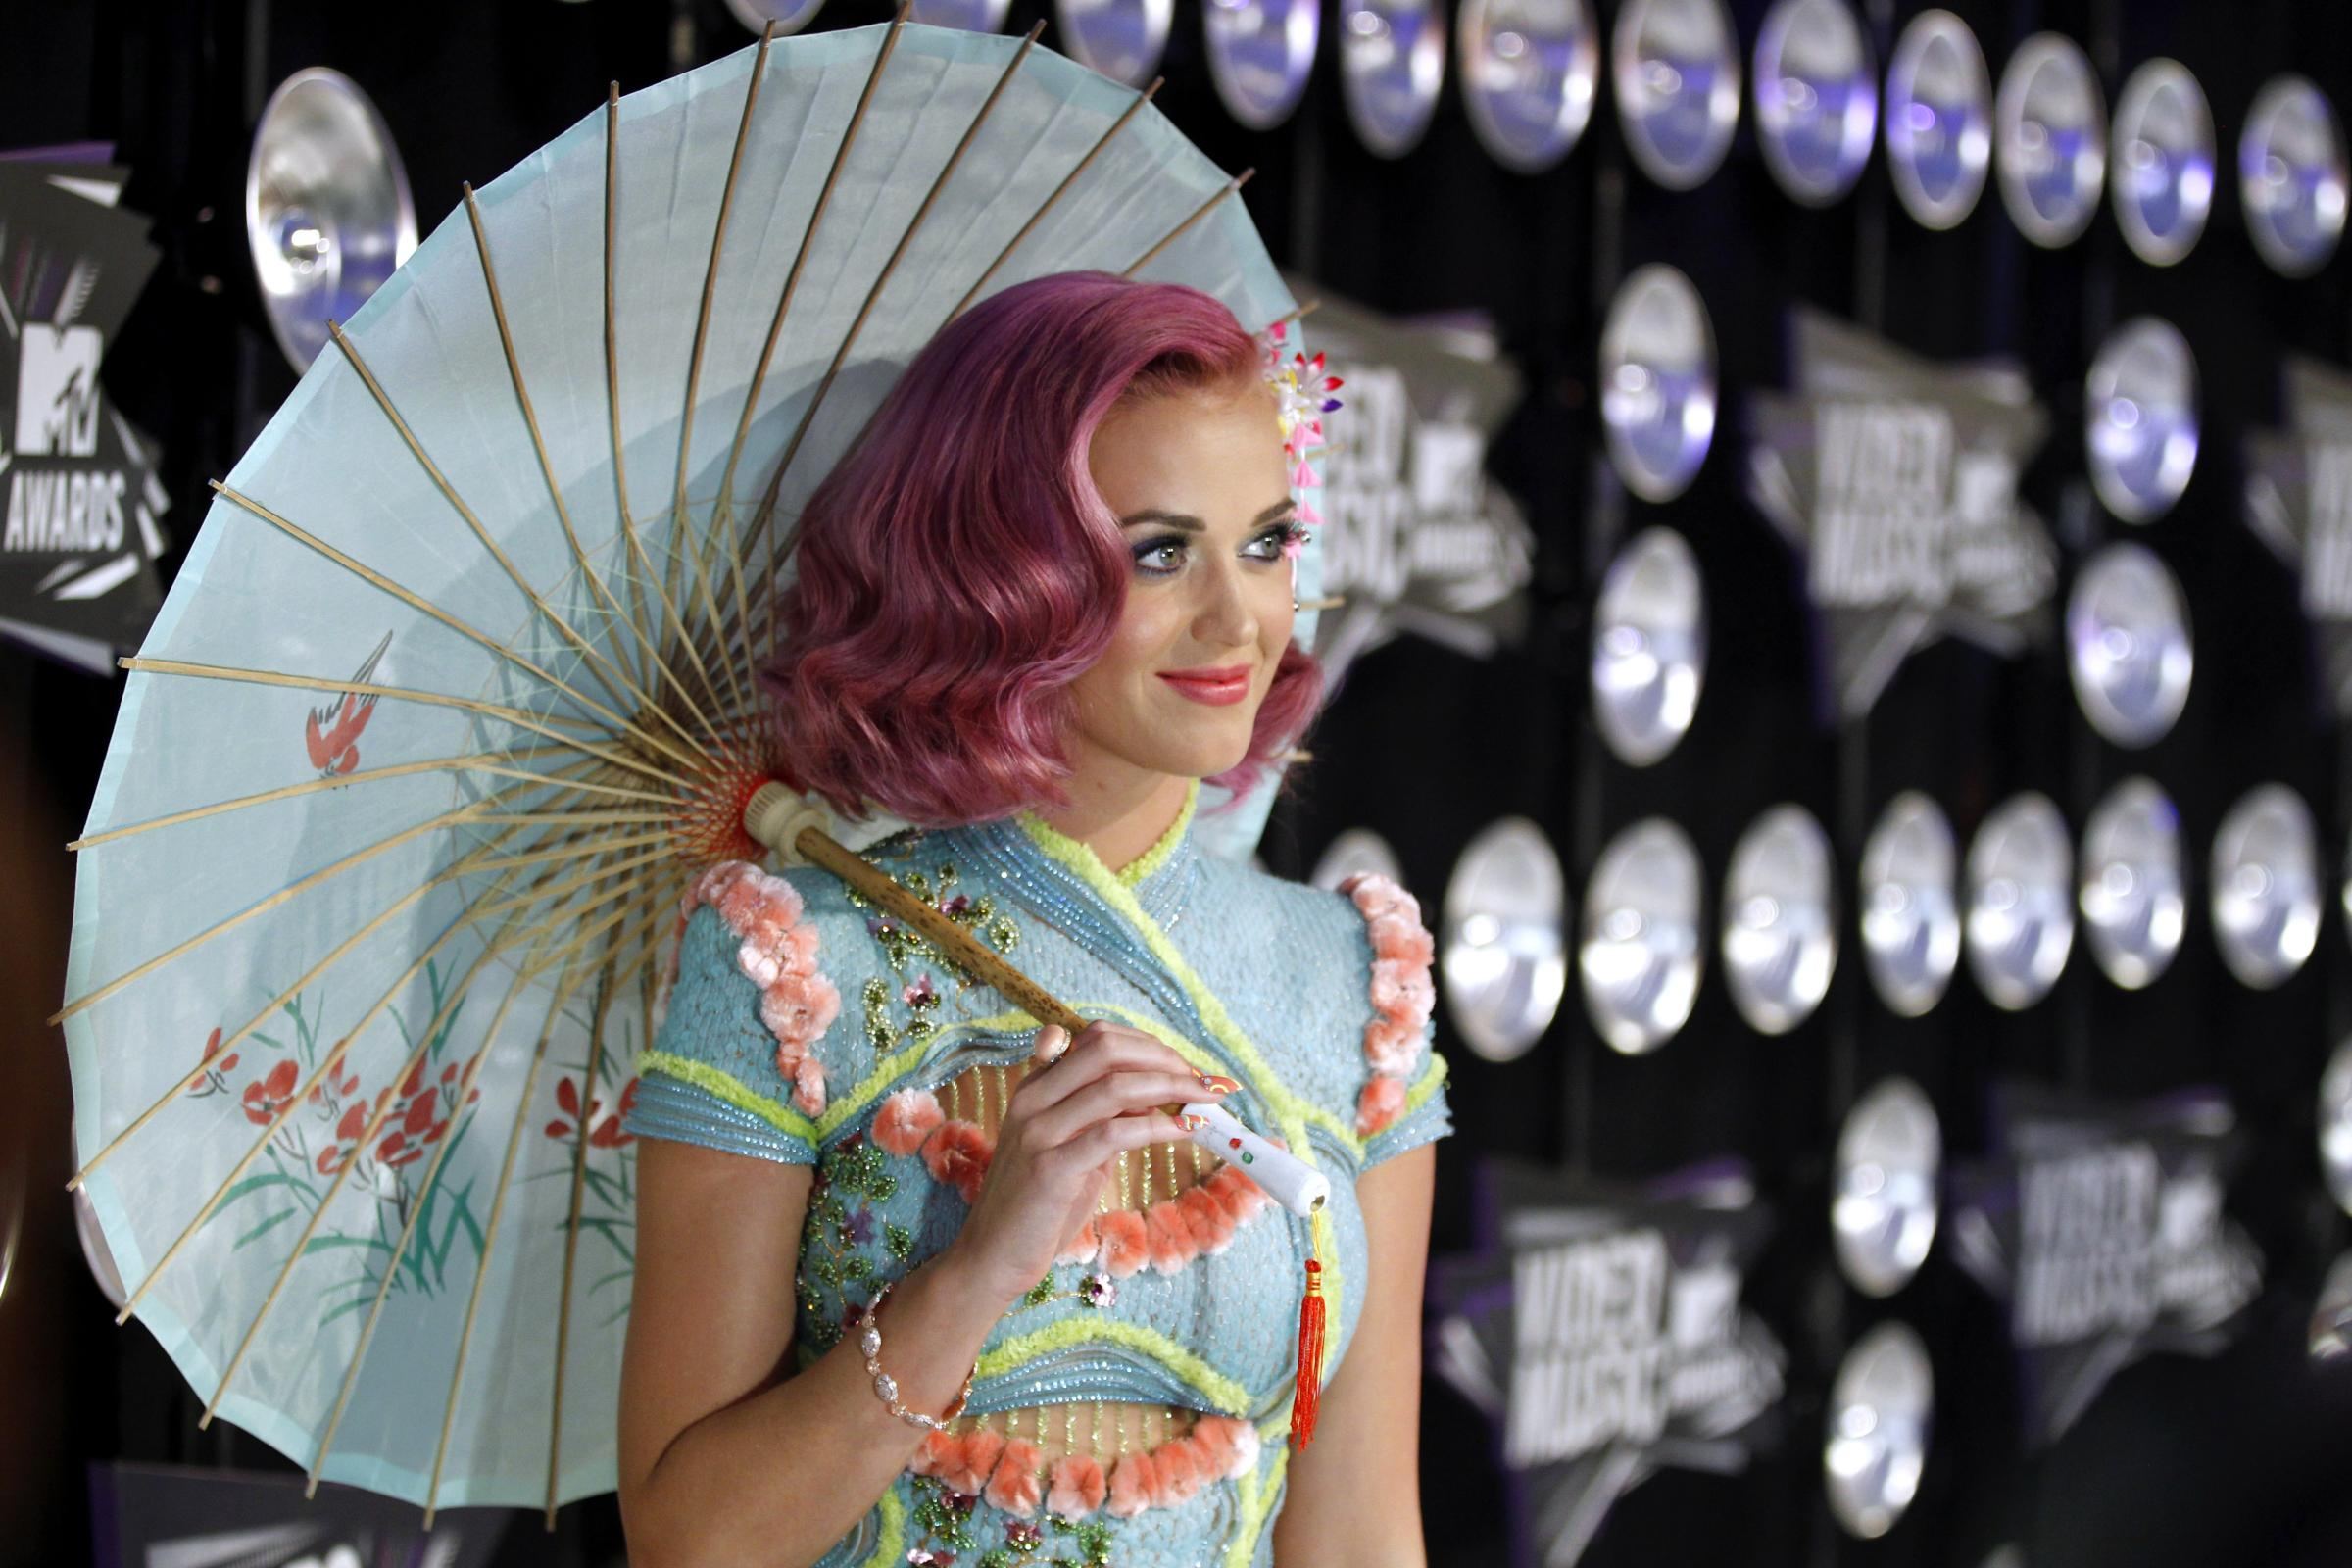 http://static.fanpage.it/musicfanpage/wp-content/uploads/gallery/mtv-video-music-awards-2011-le-foto-piu-belle-della-serata/ombrello-katy.jpg